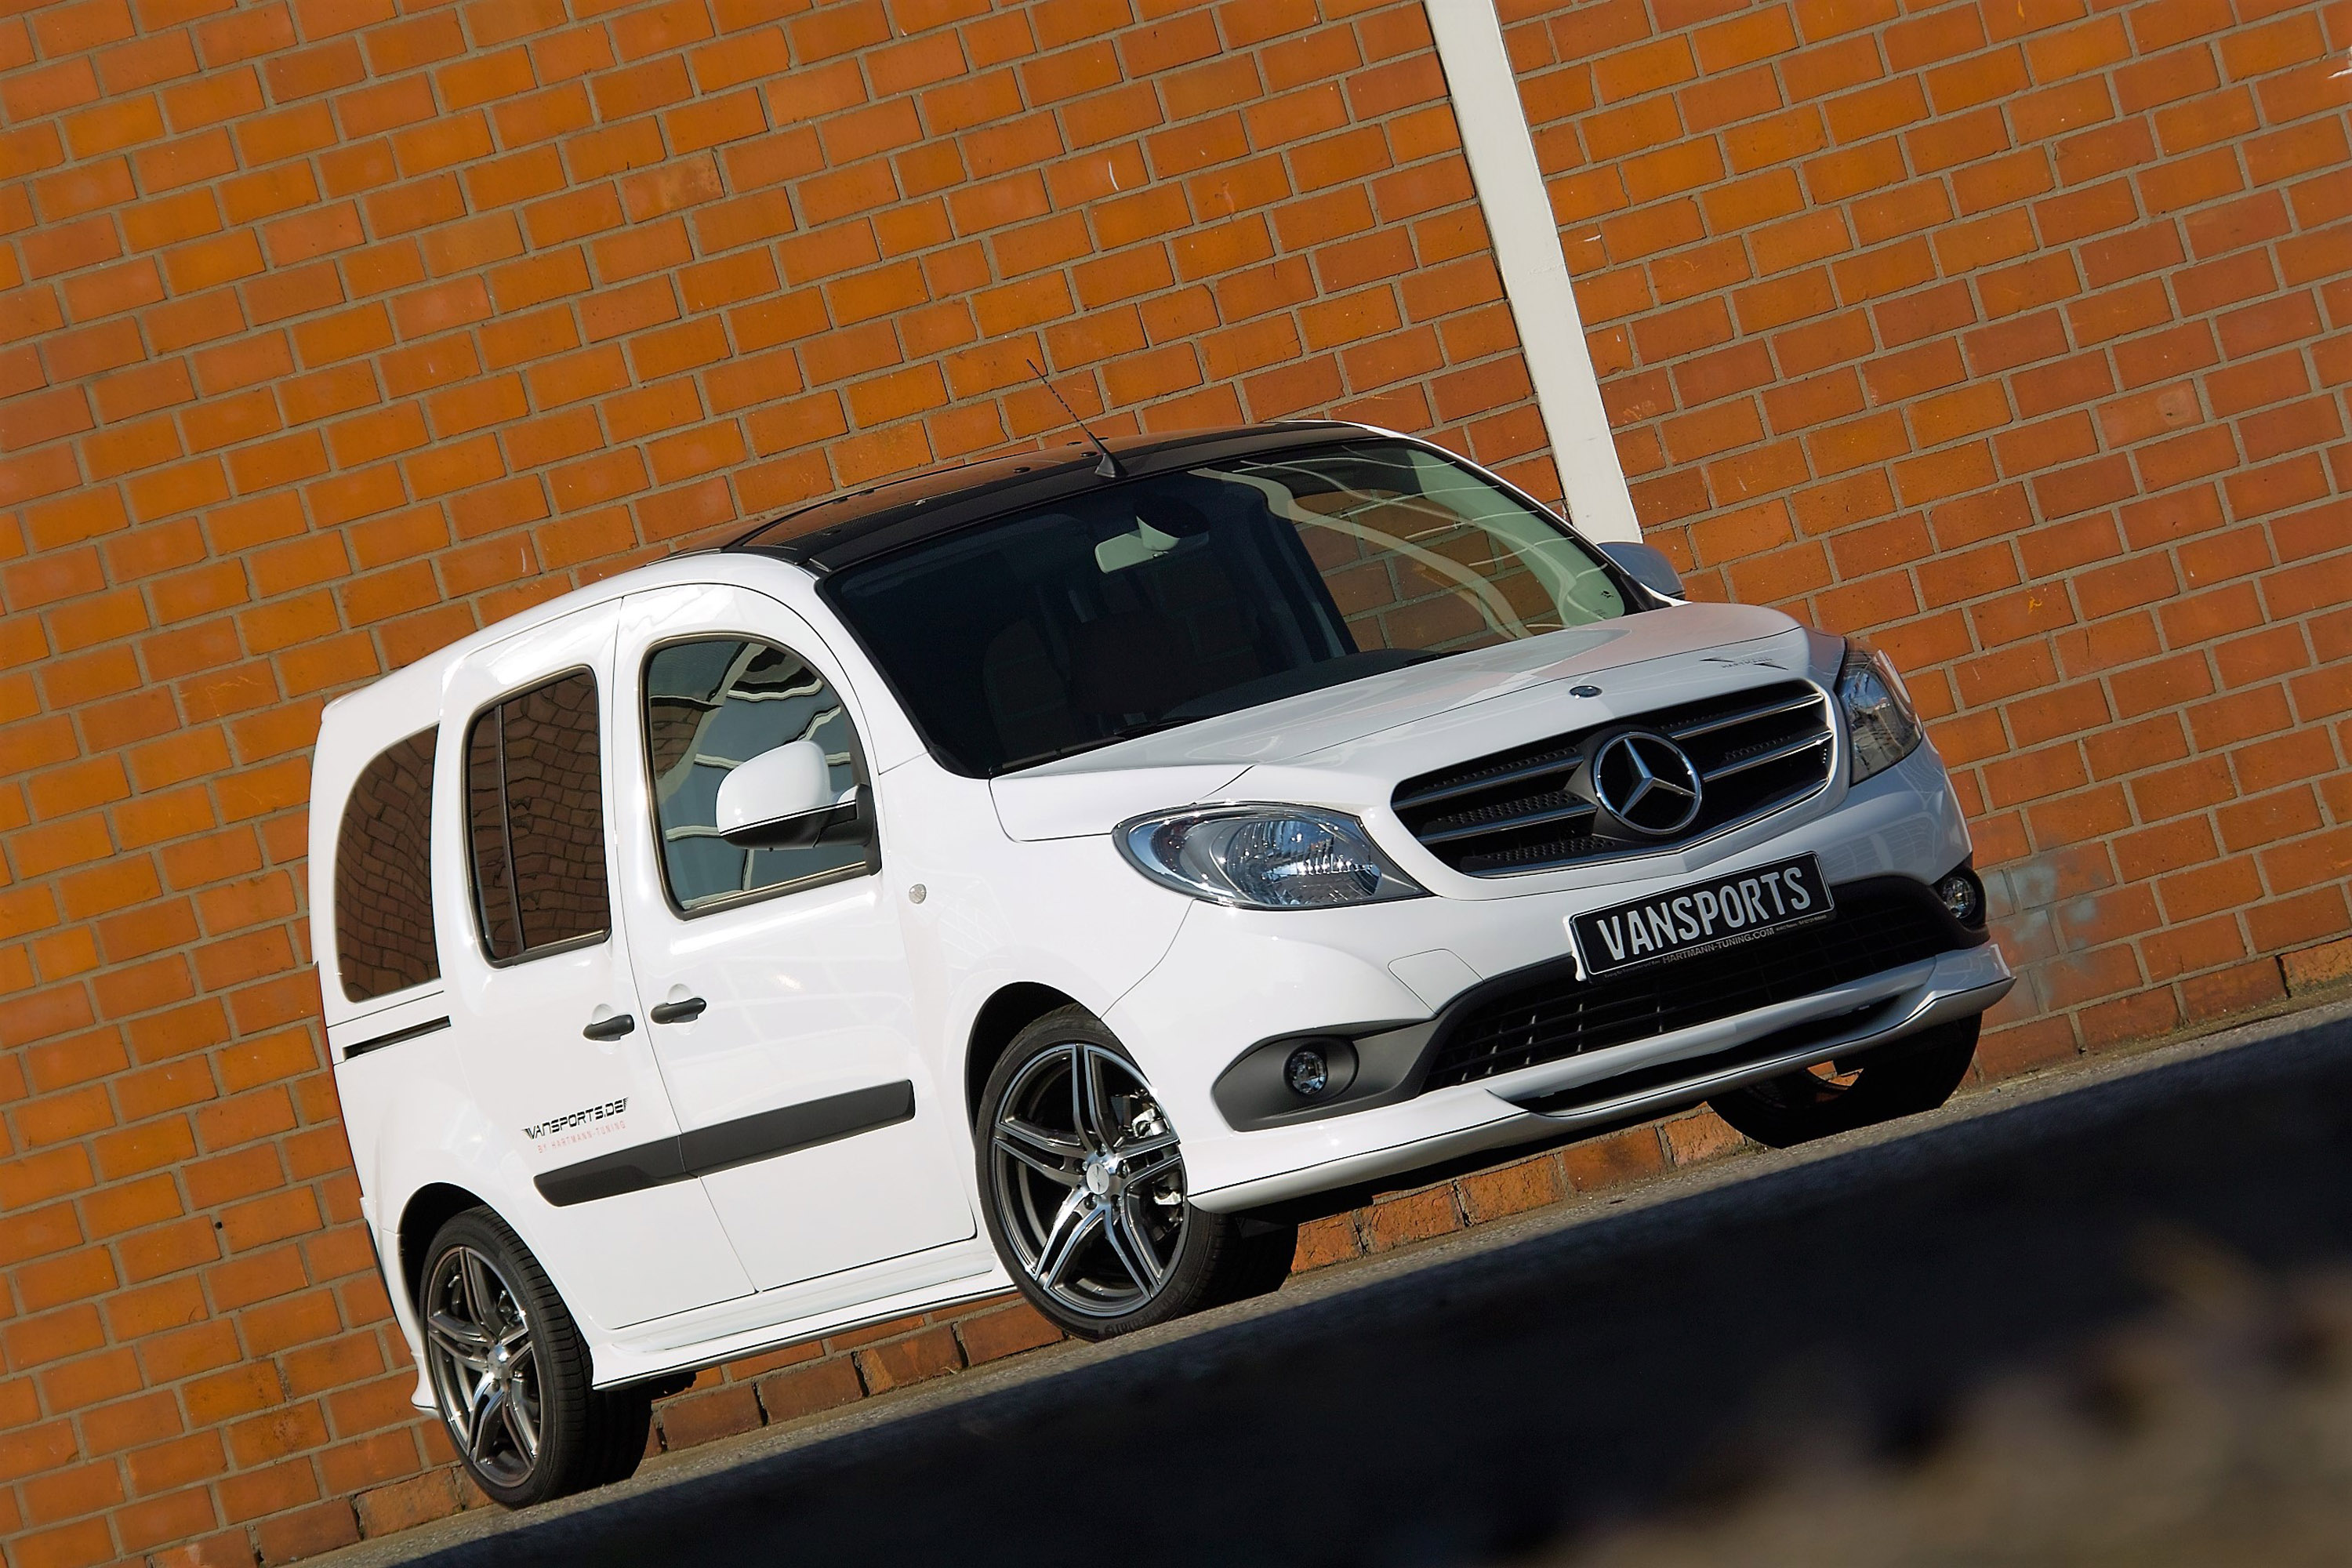 pm vansport shows a rather cool mercedes citan upgrade